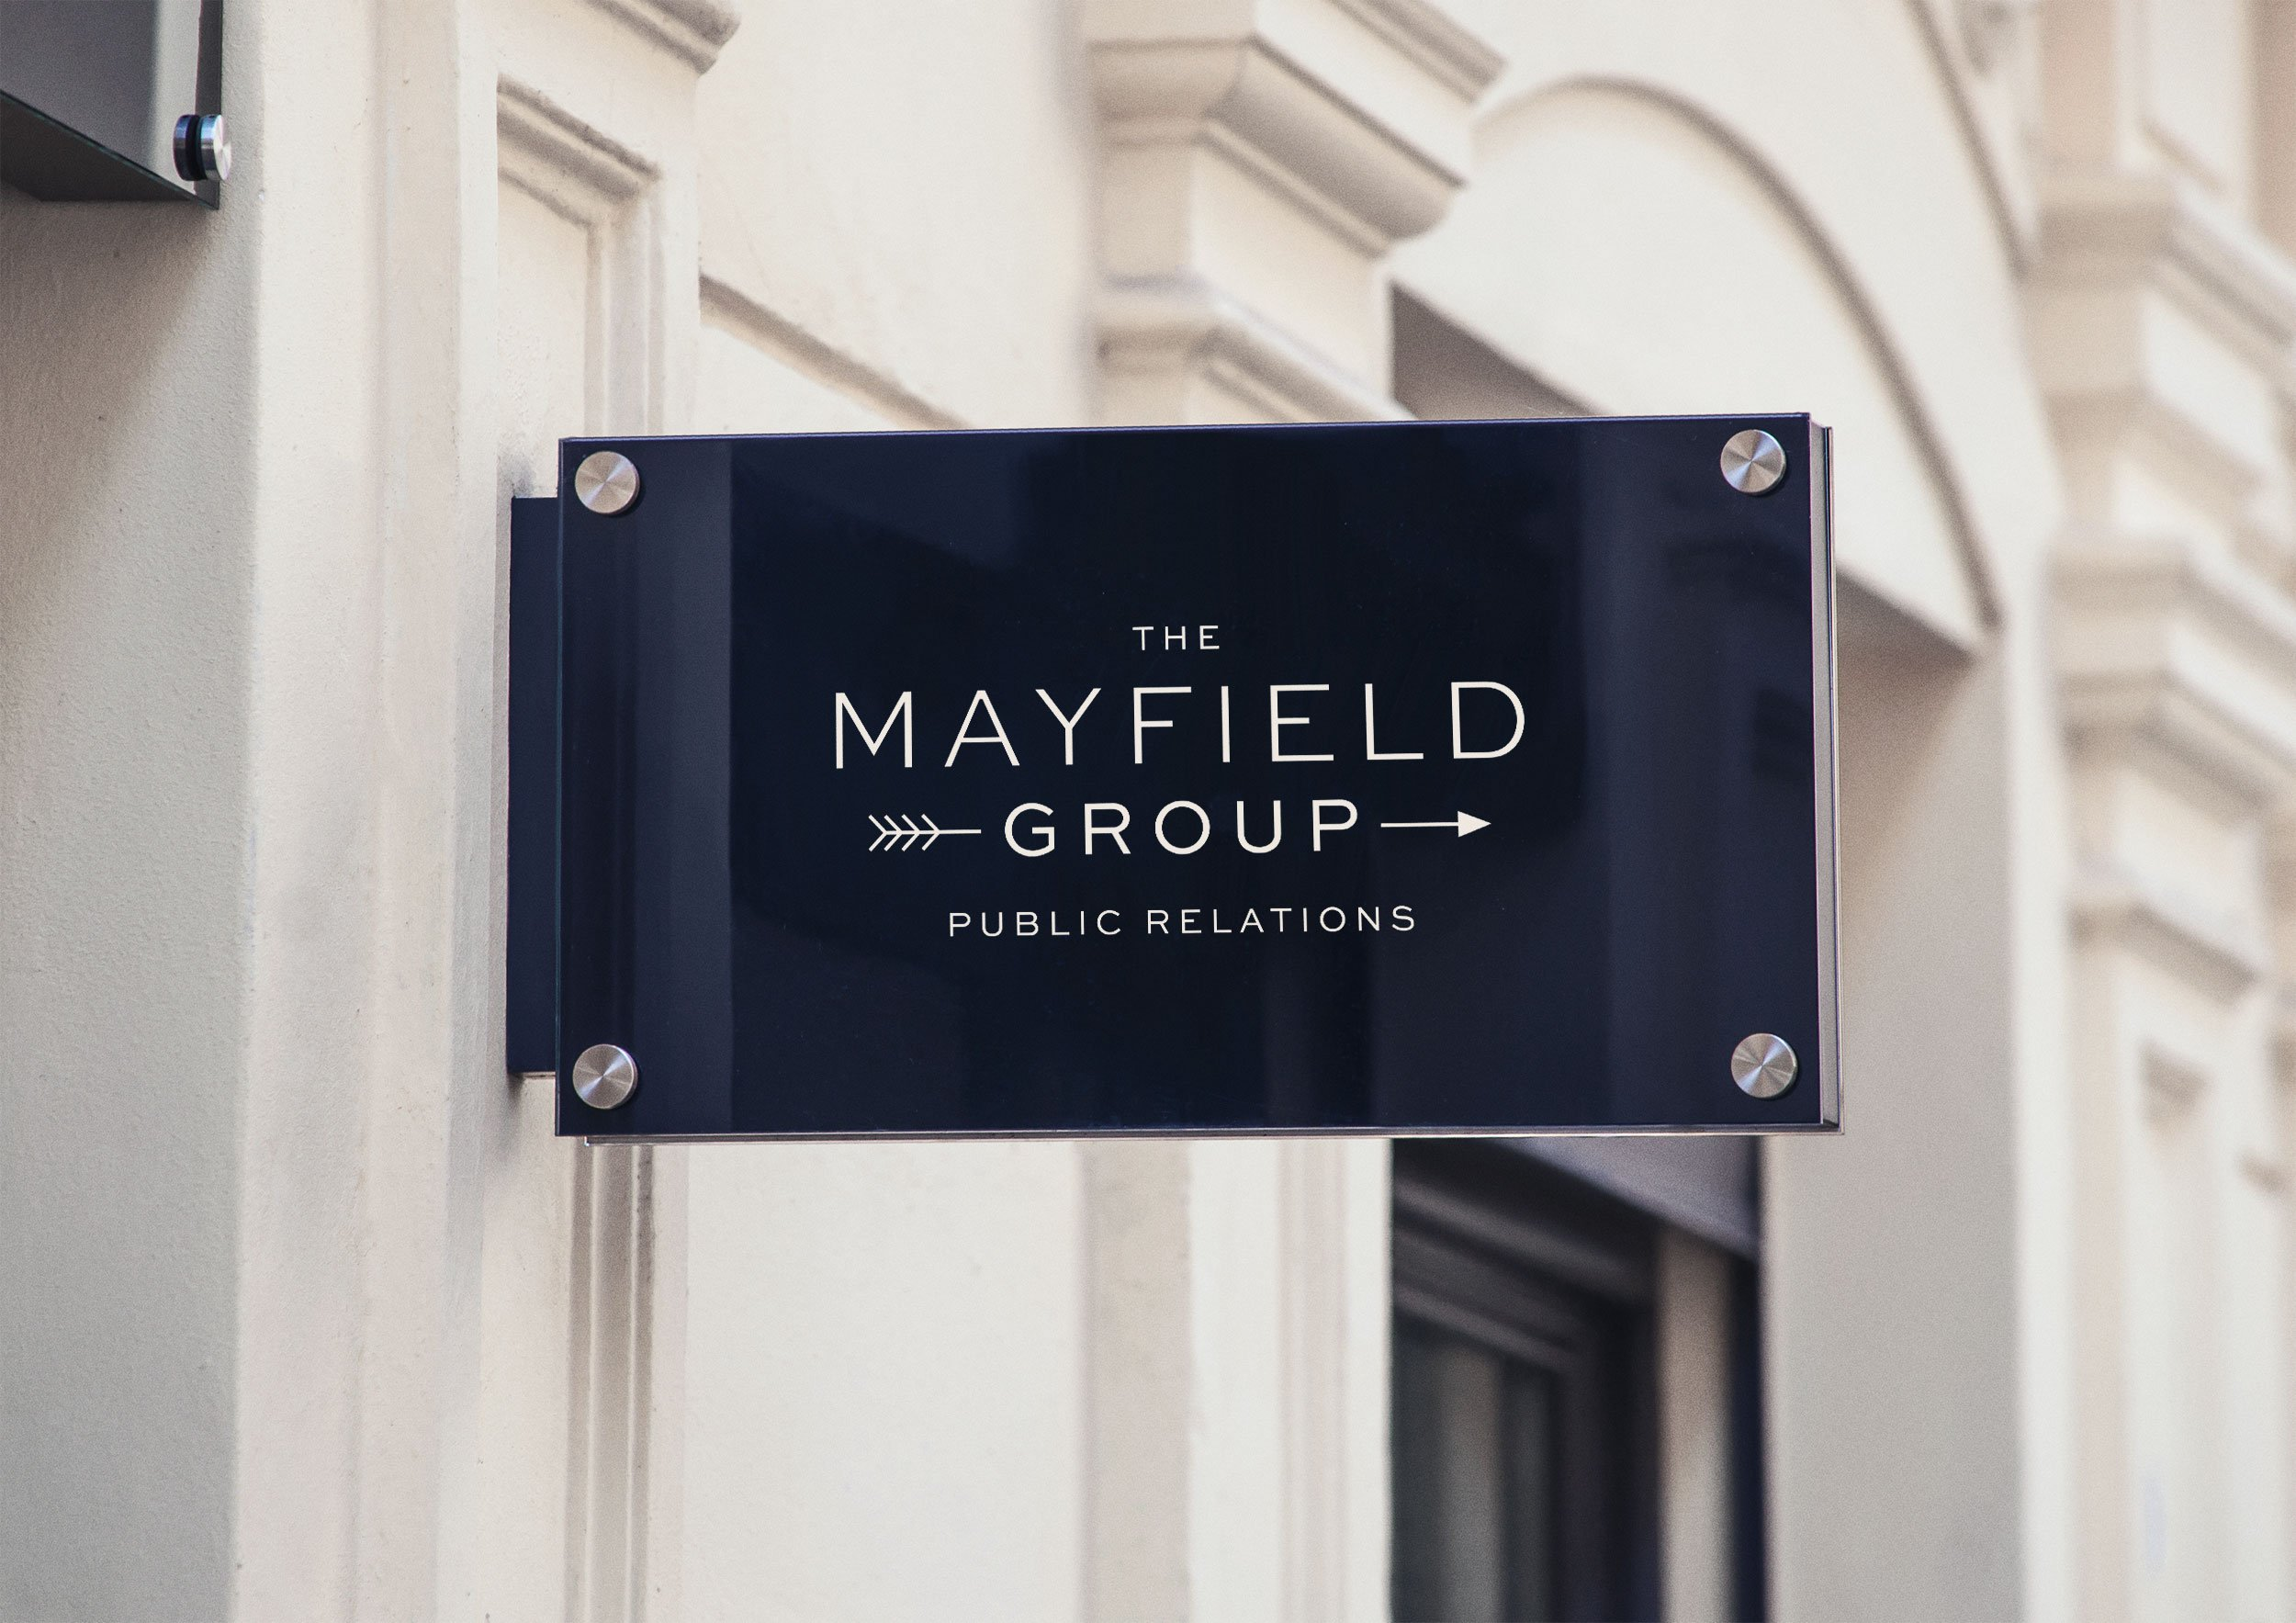 luxury logo design mayfield group public relations firm